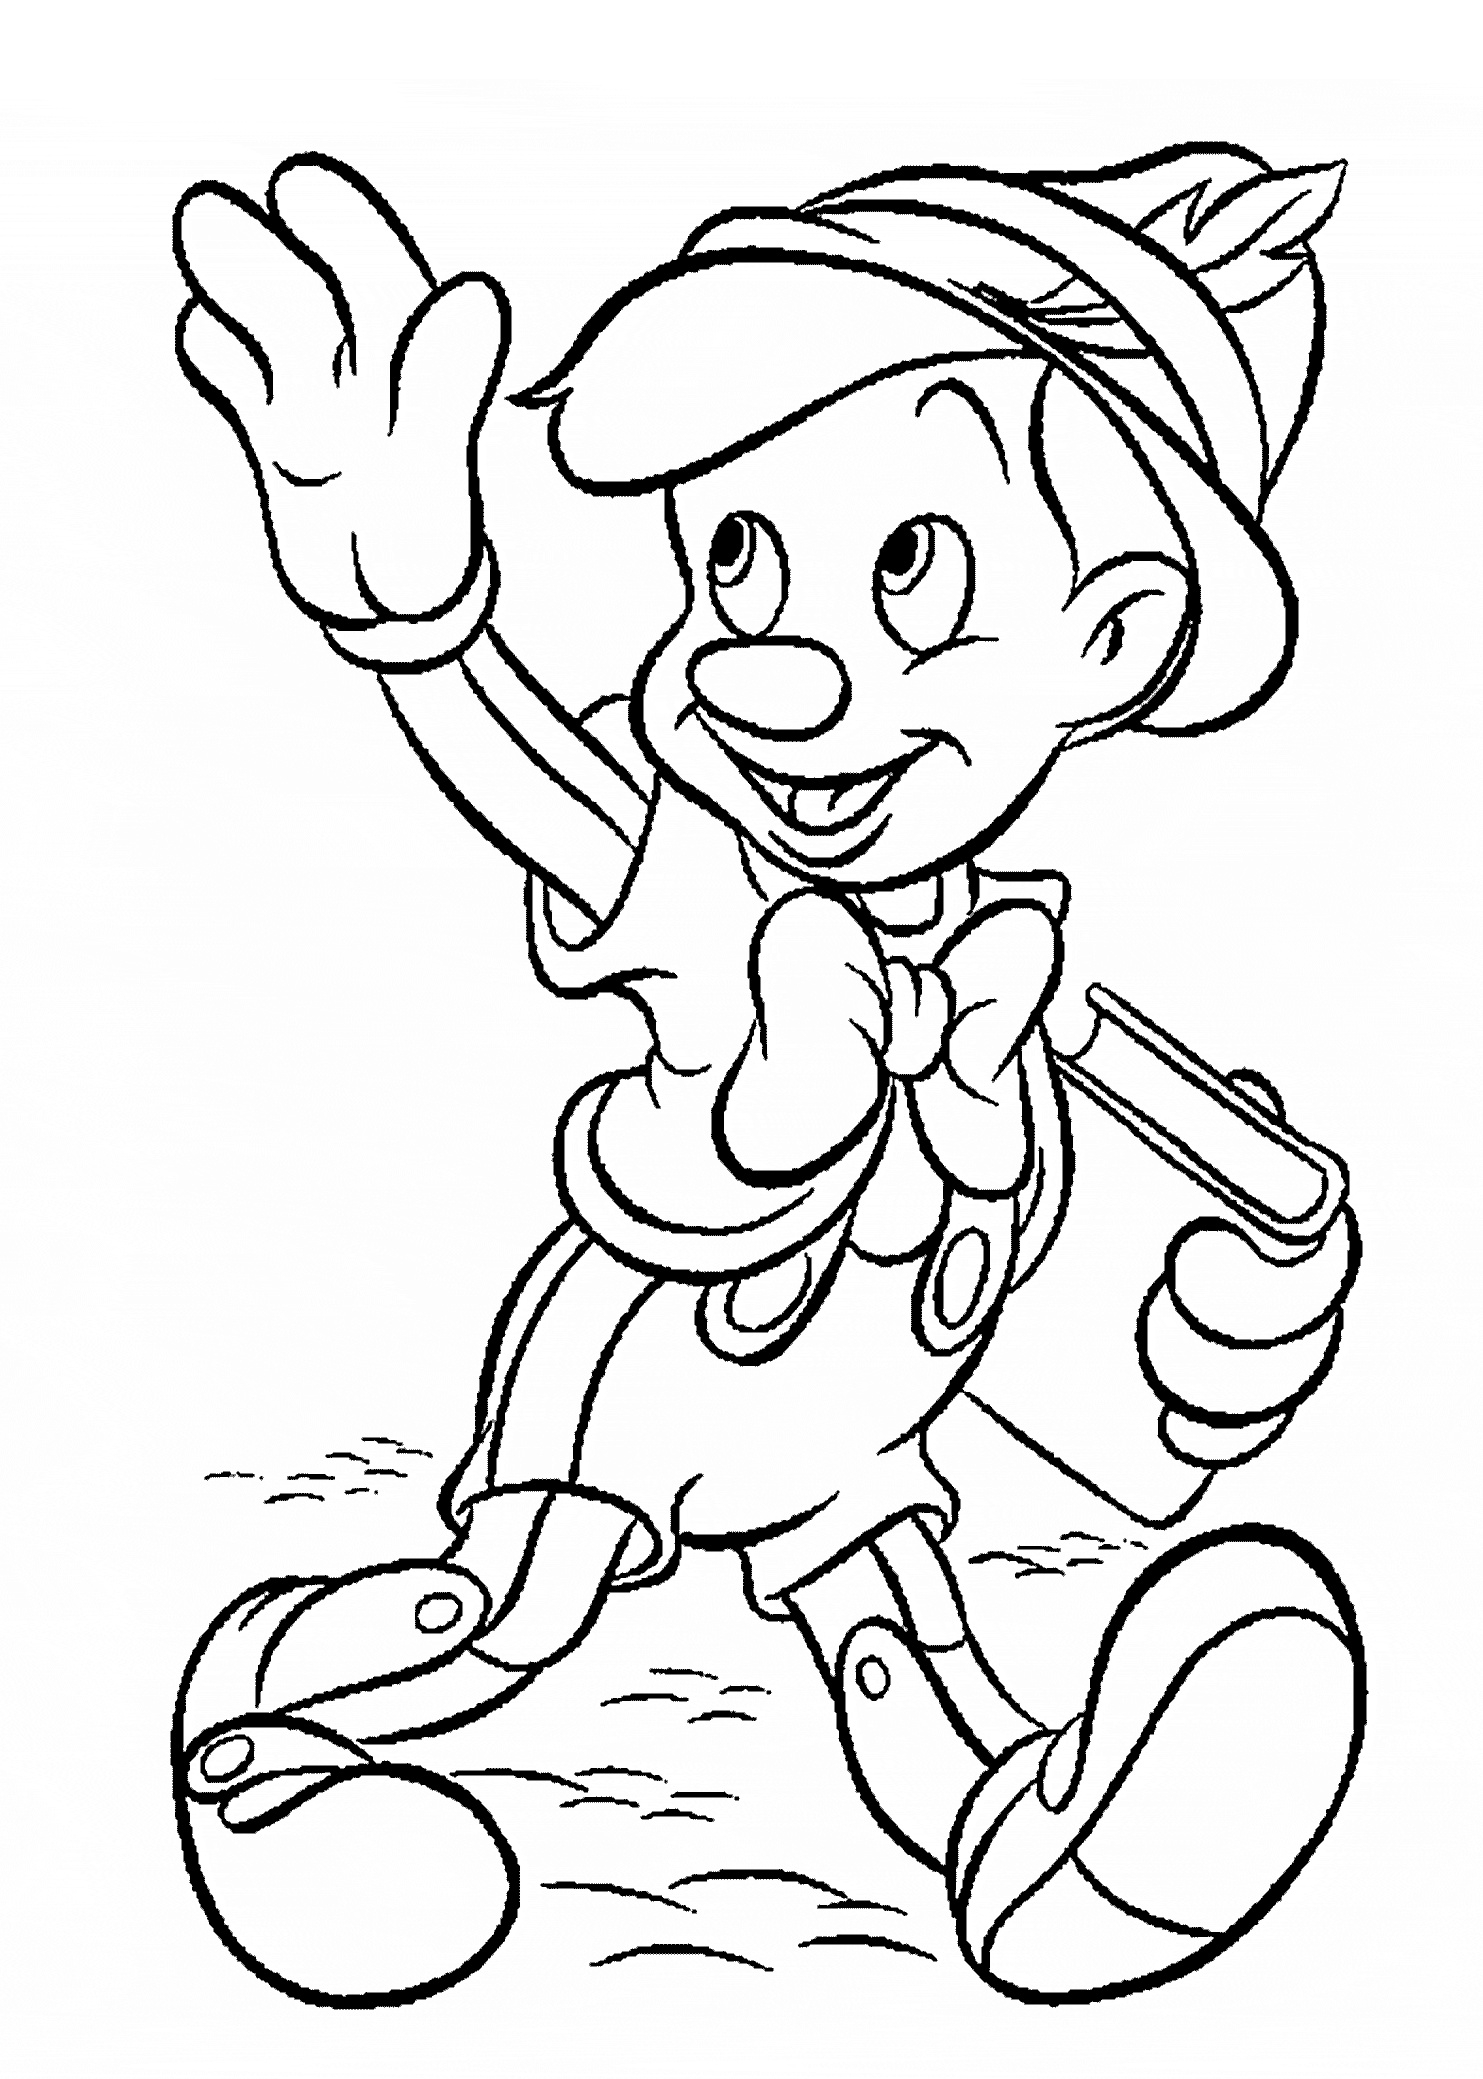 Print Free Coloring Pages Disney Gallery | Free Coloring Sheets